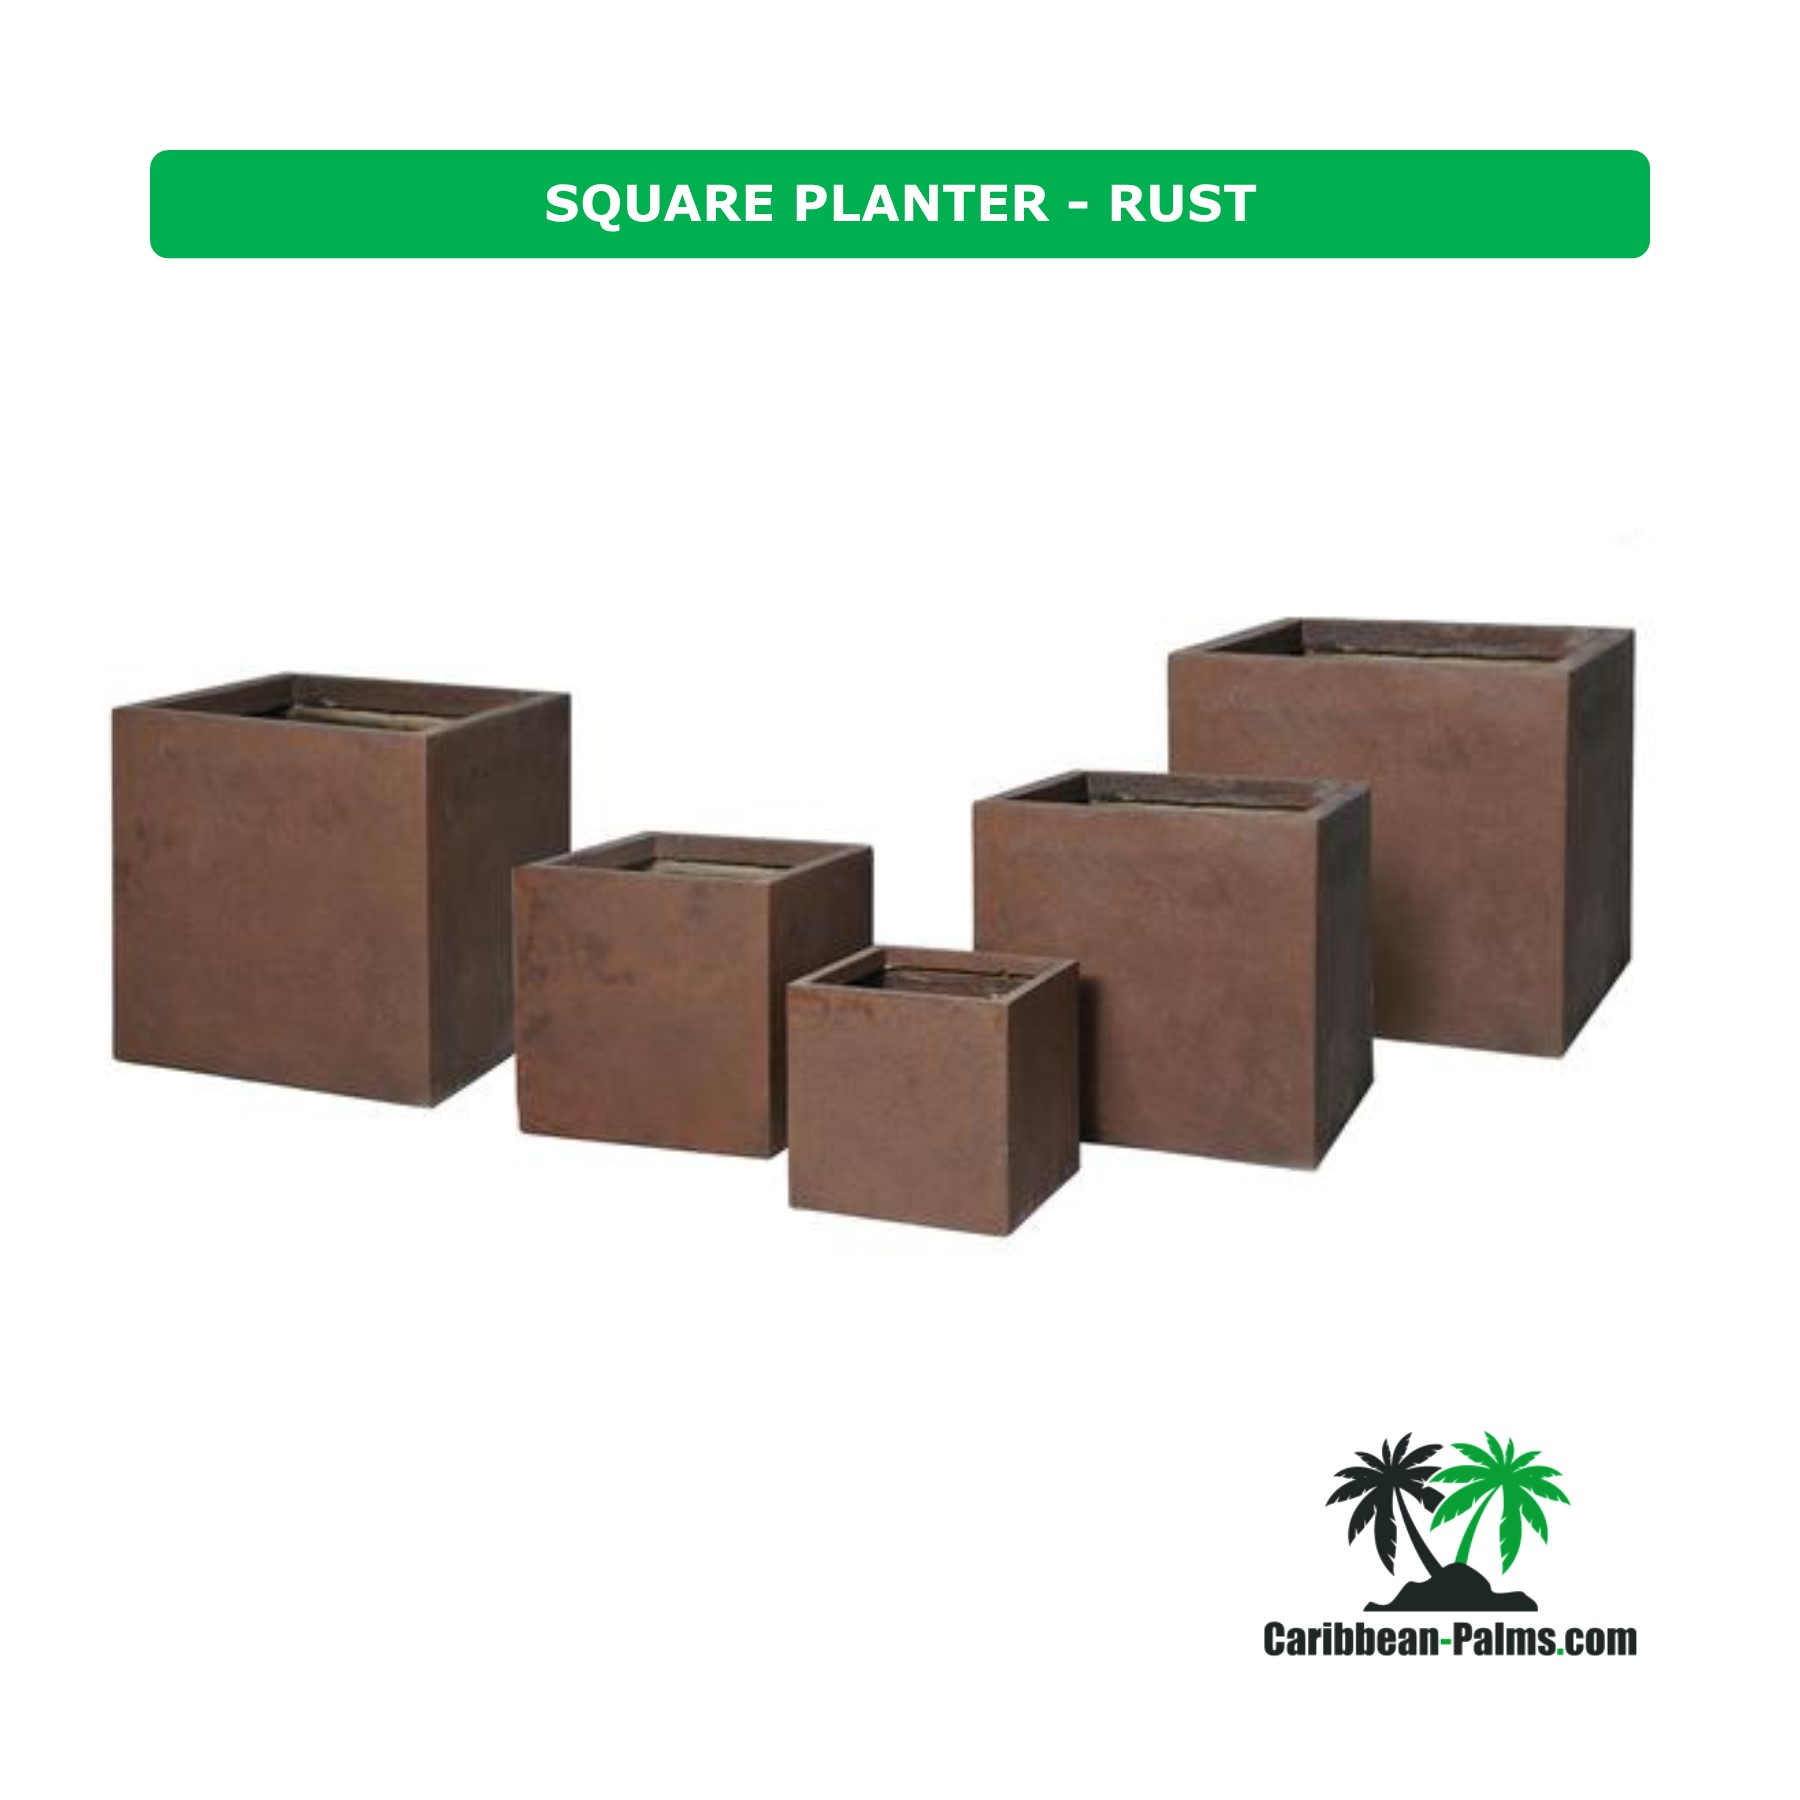 SQUARE PLANTER RUST